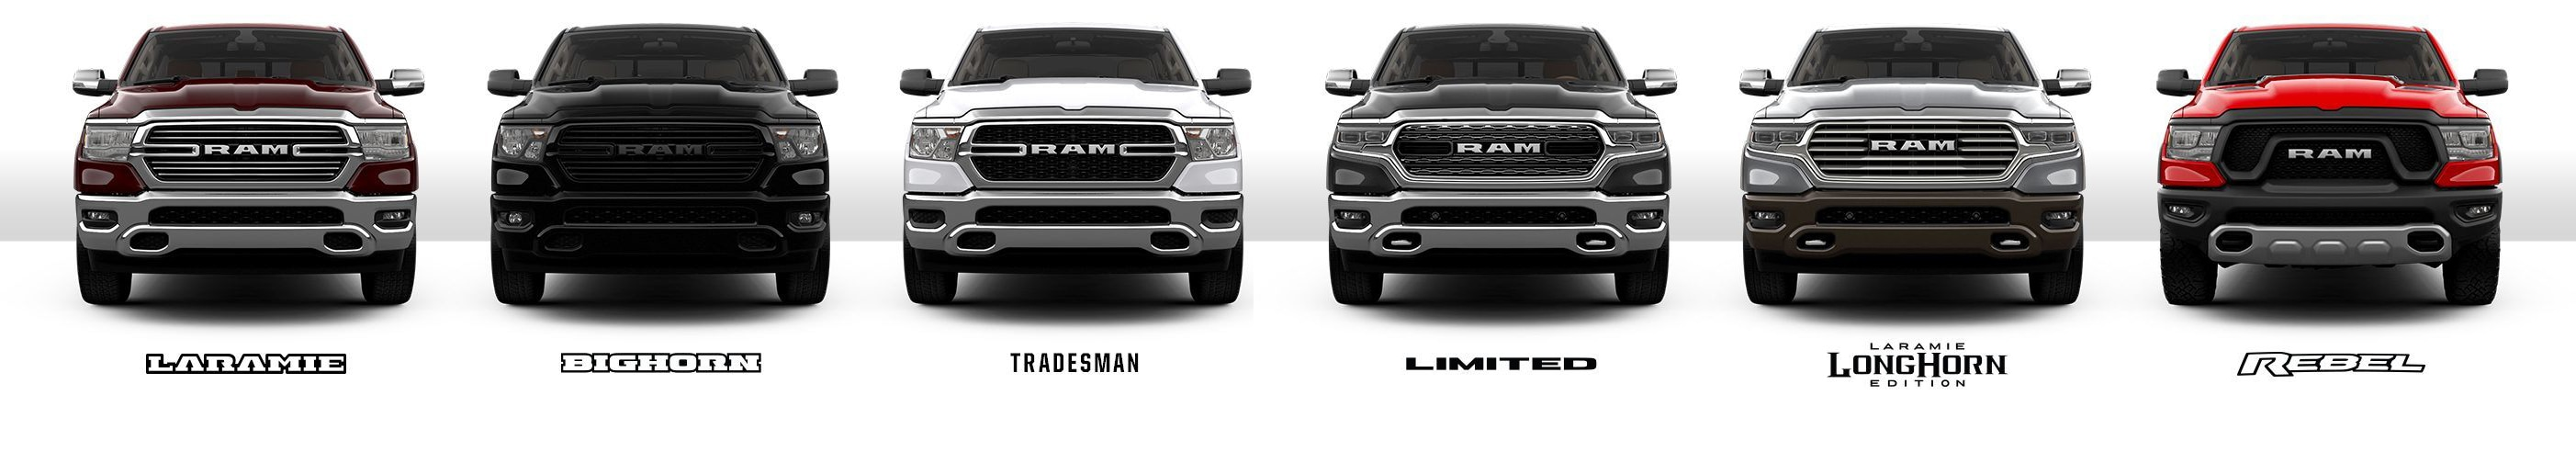 Larry H Miller Dodge Sandy >> 2019 Ram 1500 | Larry H. Miller Chrysler Jeep Dodge Ram Sandy